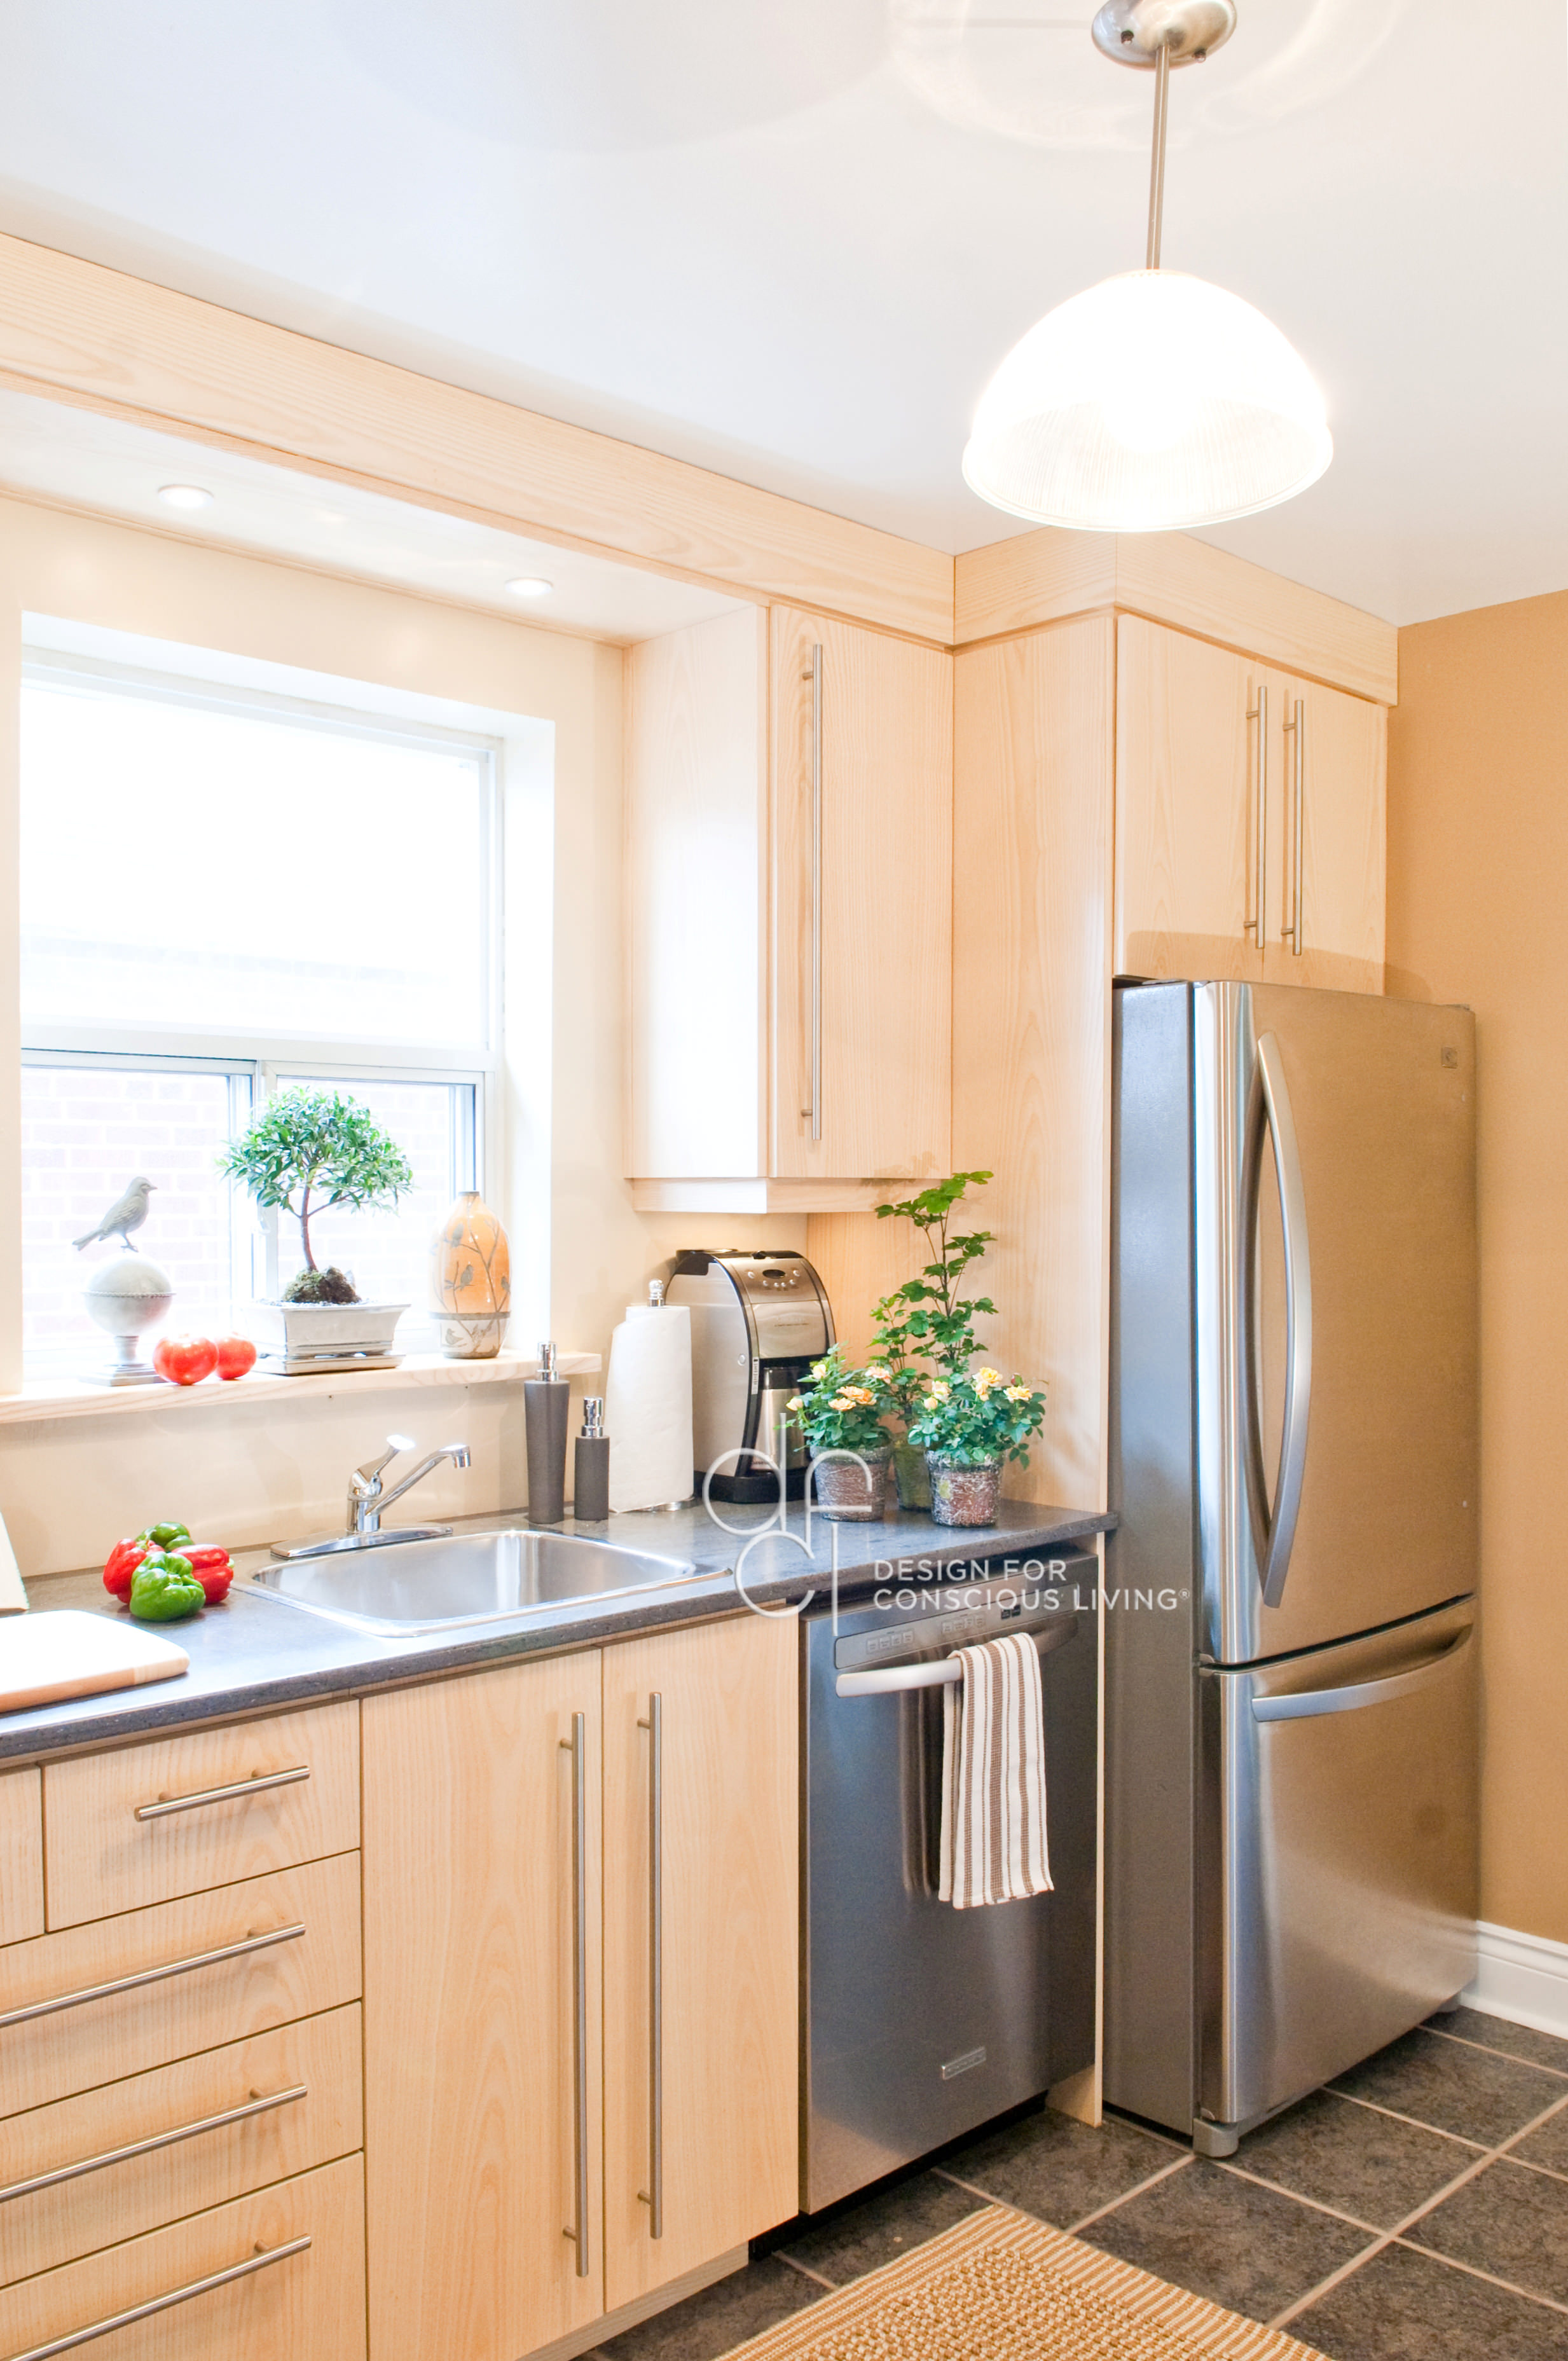 Kitchen redesign by design for conscious living